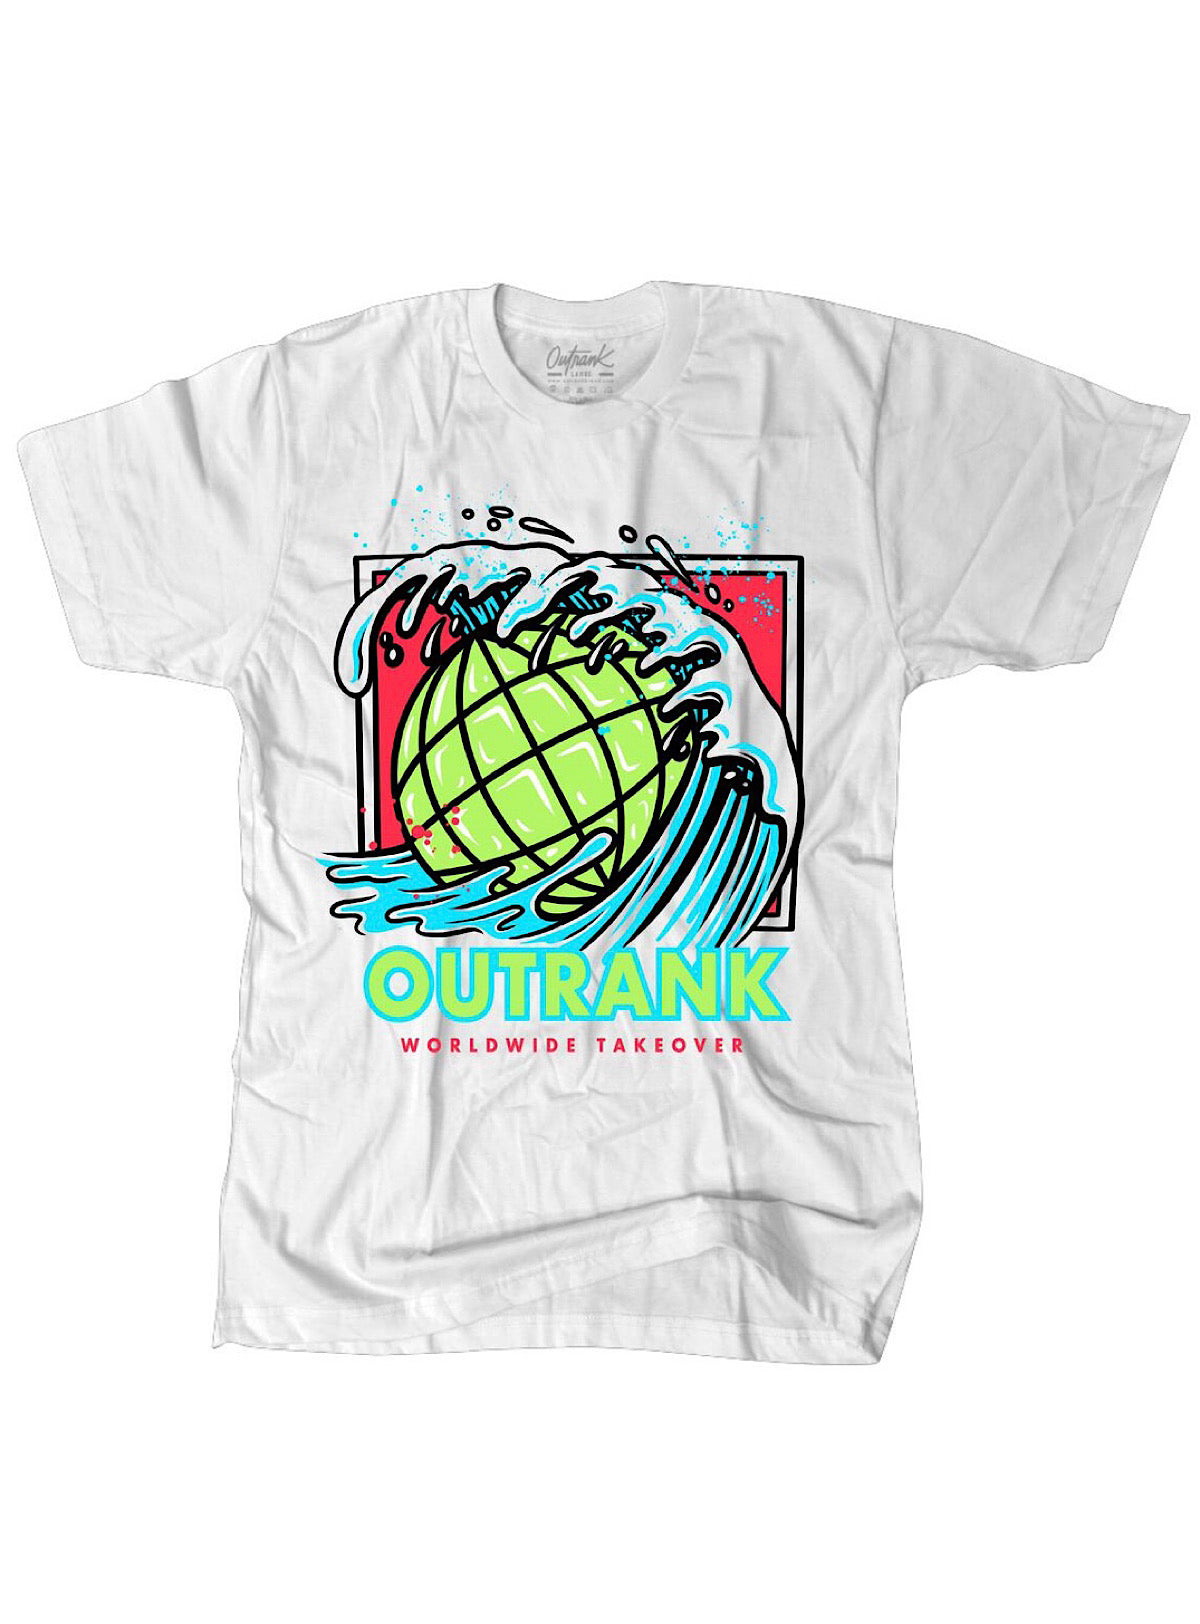 Outrank T-Shirt - Worldwide Takeover - White - OR1240